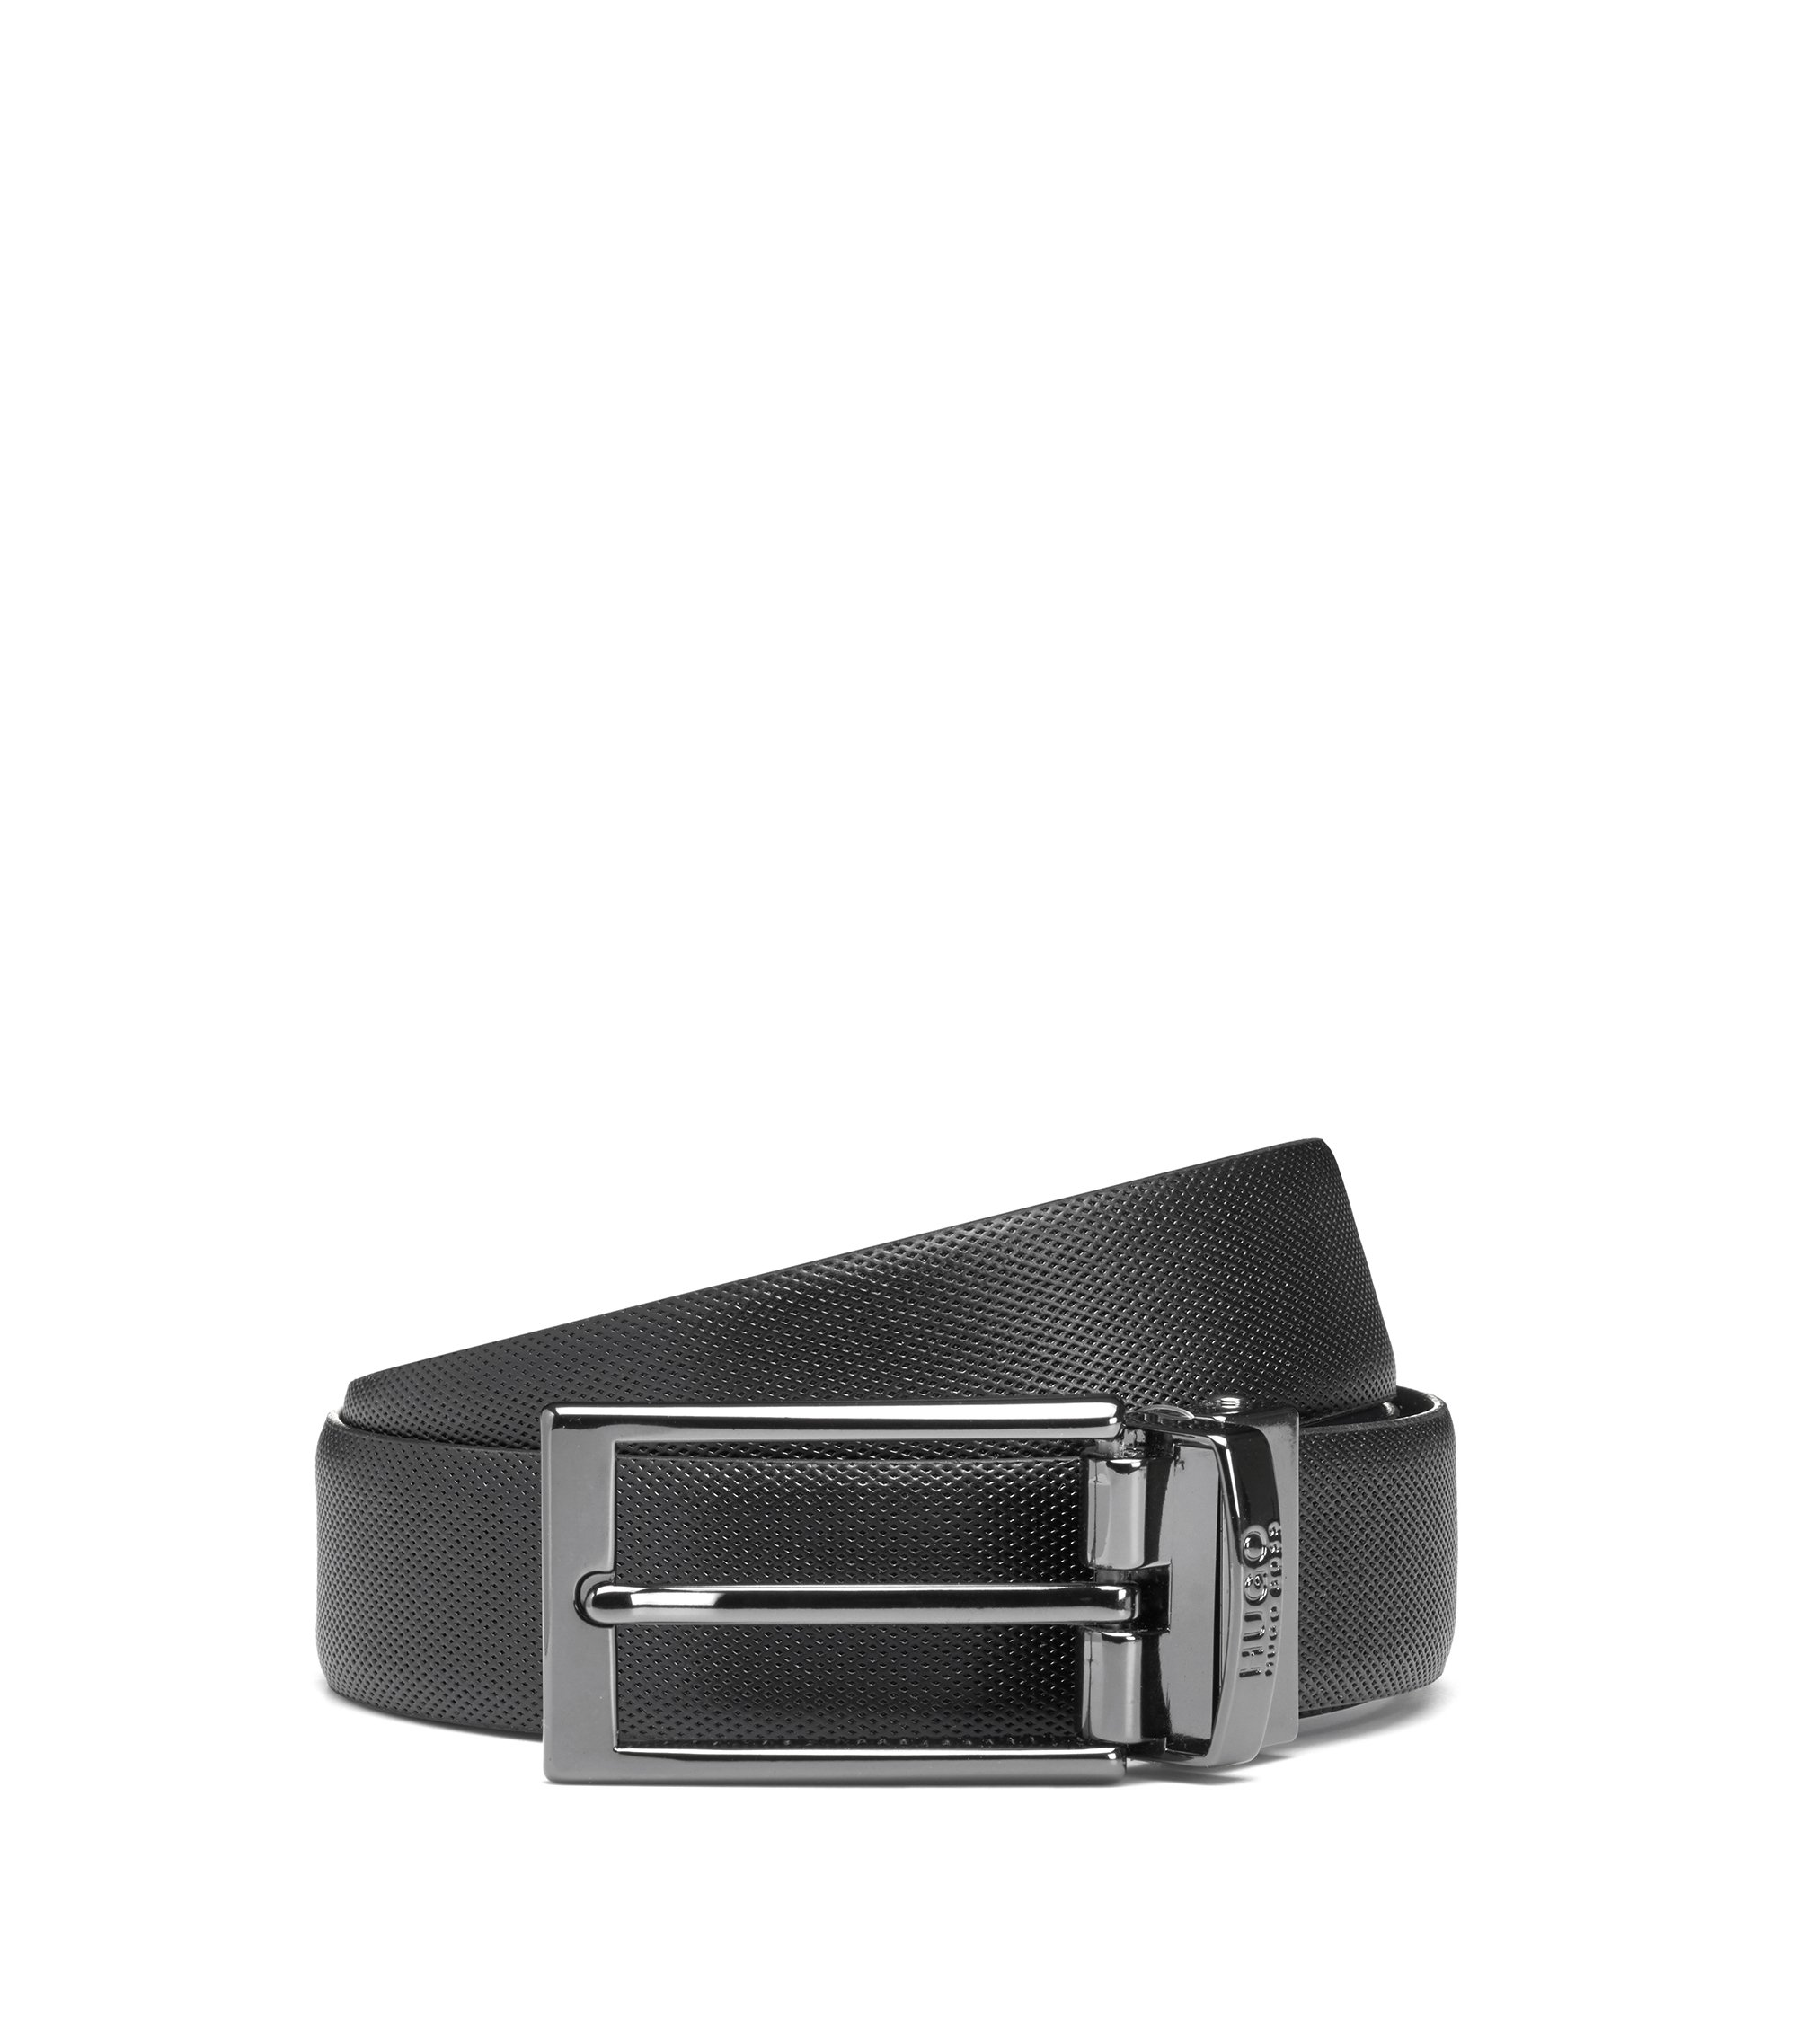 Reversible leather belt with a slimline buckle, Schwarz